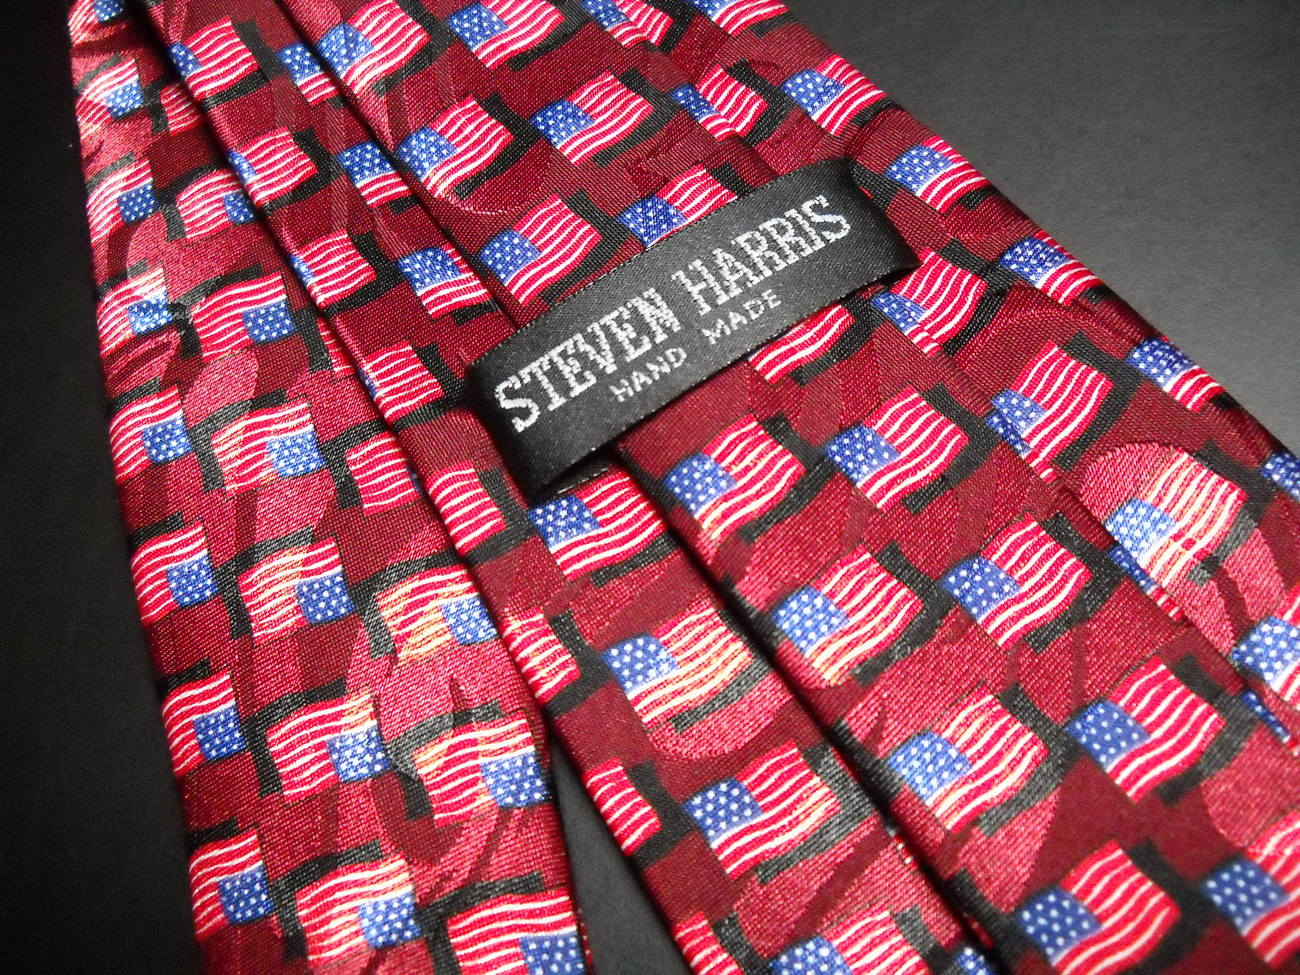 Steven Harris Neck Tie American Flags Hand Made image 4